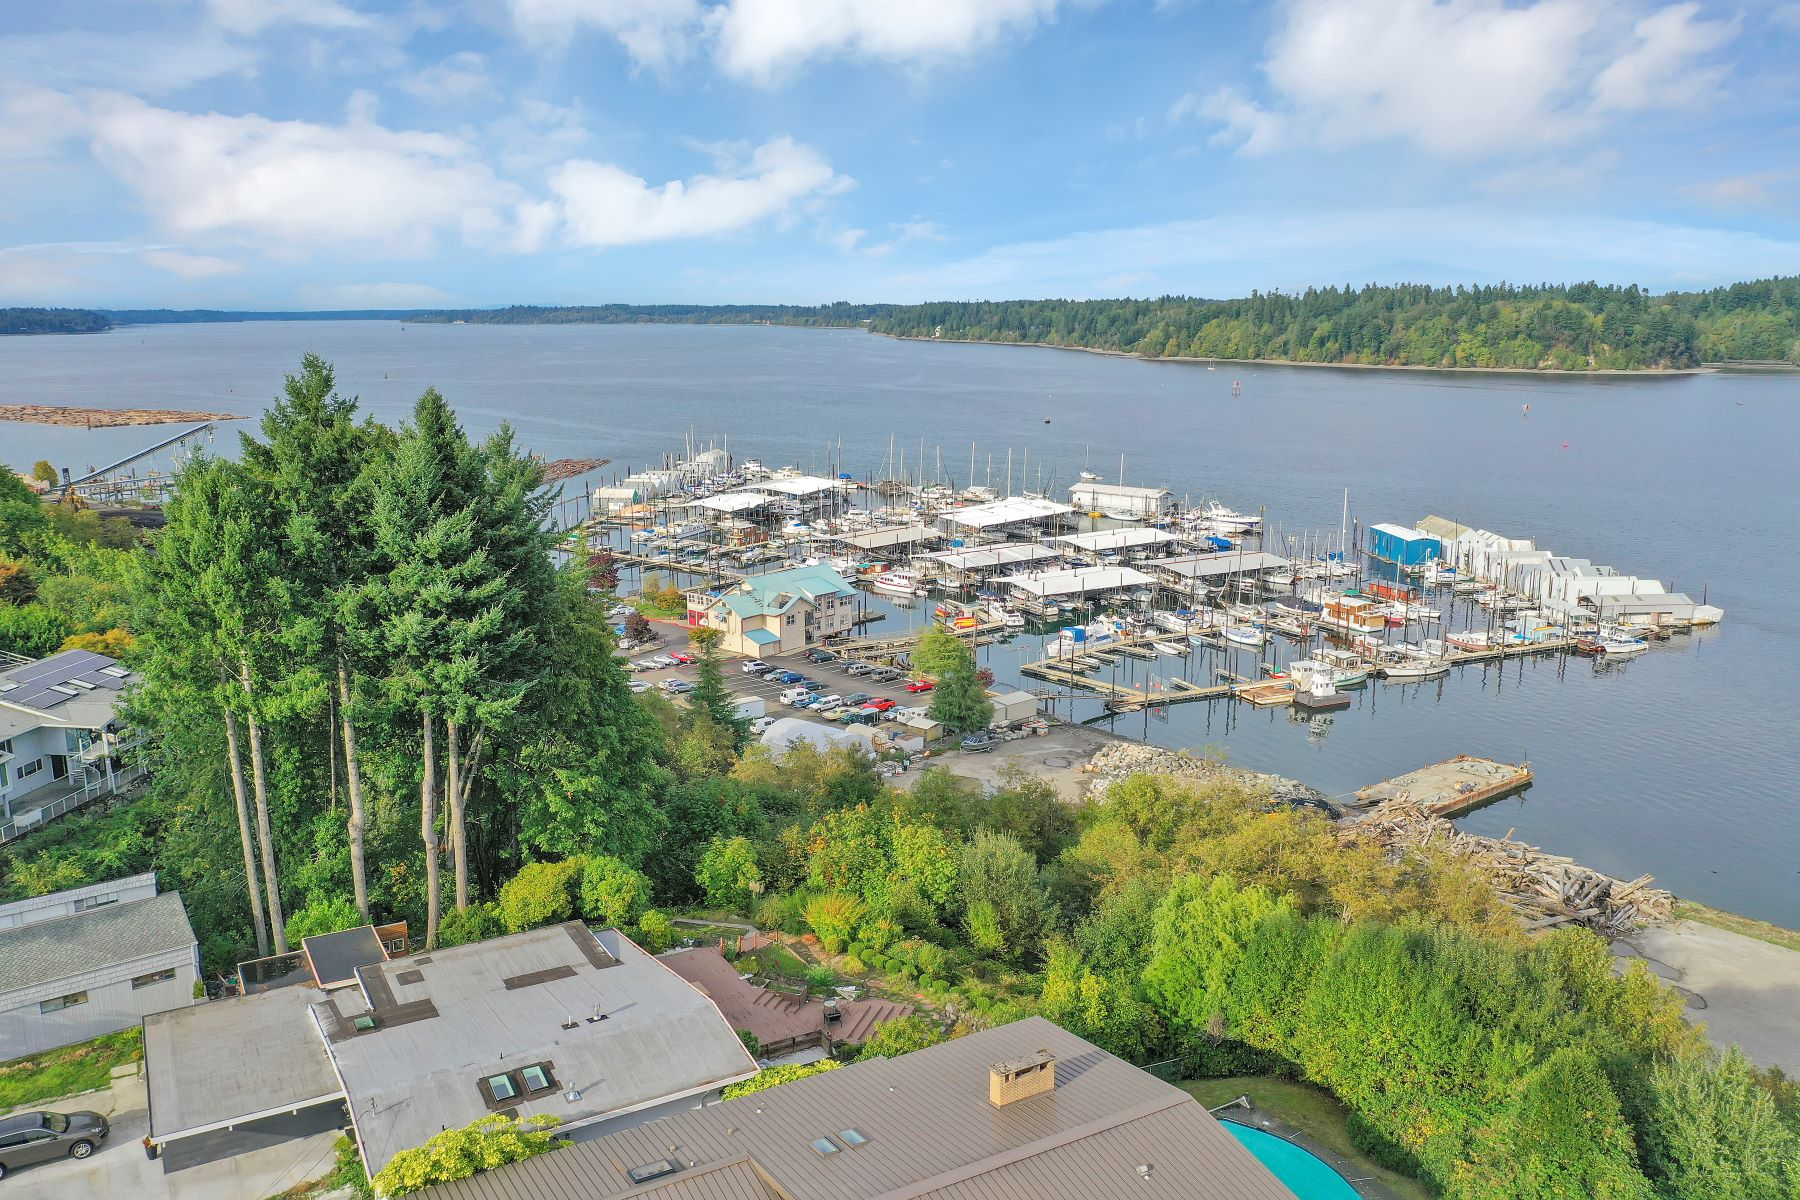 Single Family Homes for Sale at 1305 Ebb Tide Terrace NW Olympia, Washington 98502 United States